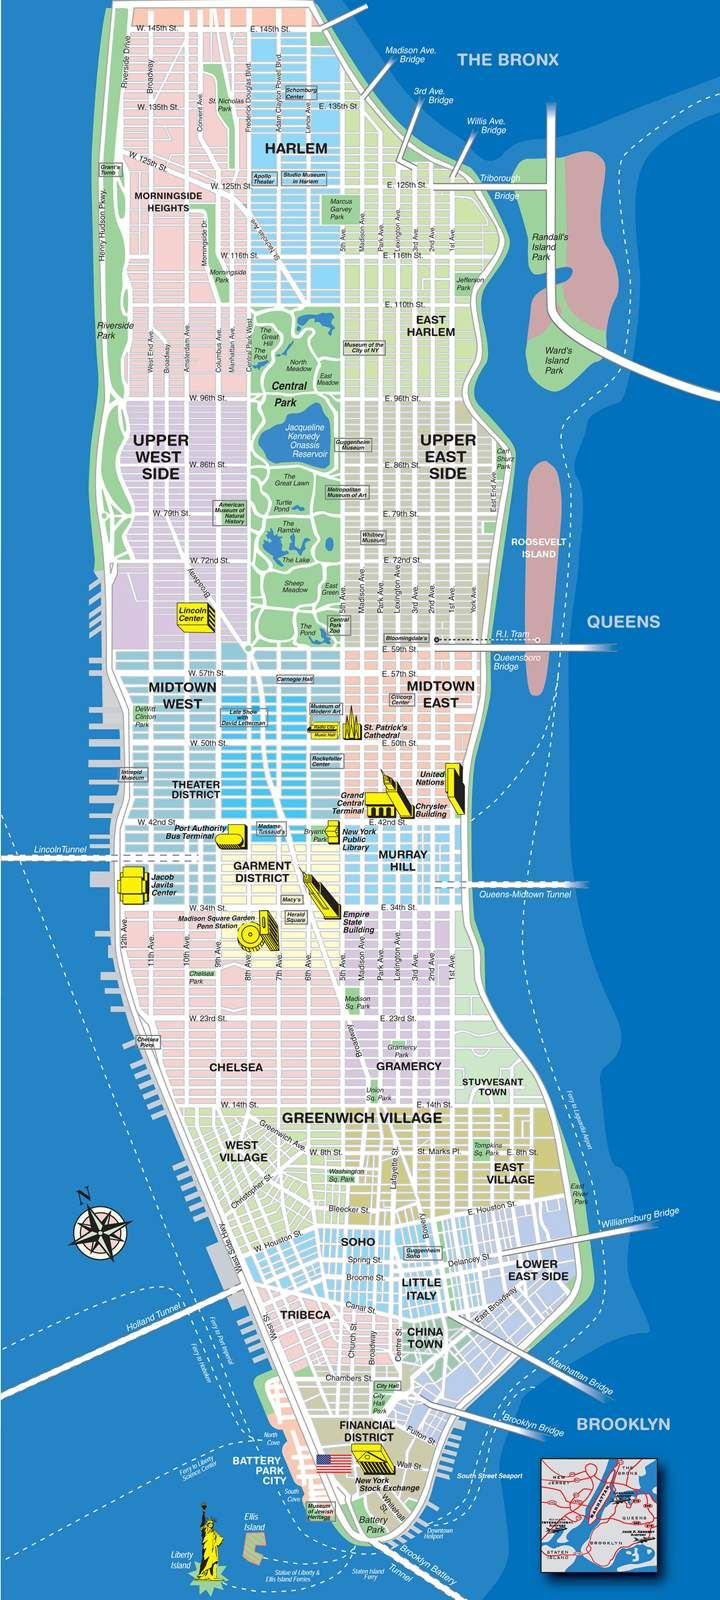 Highresolution Map Of Manhattan For Print Or Download USA - High resolution us map download